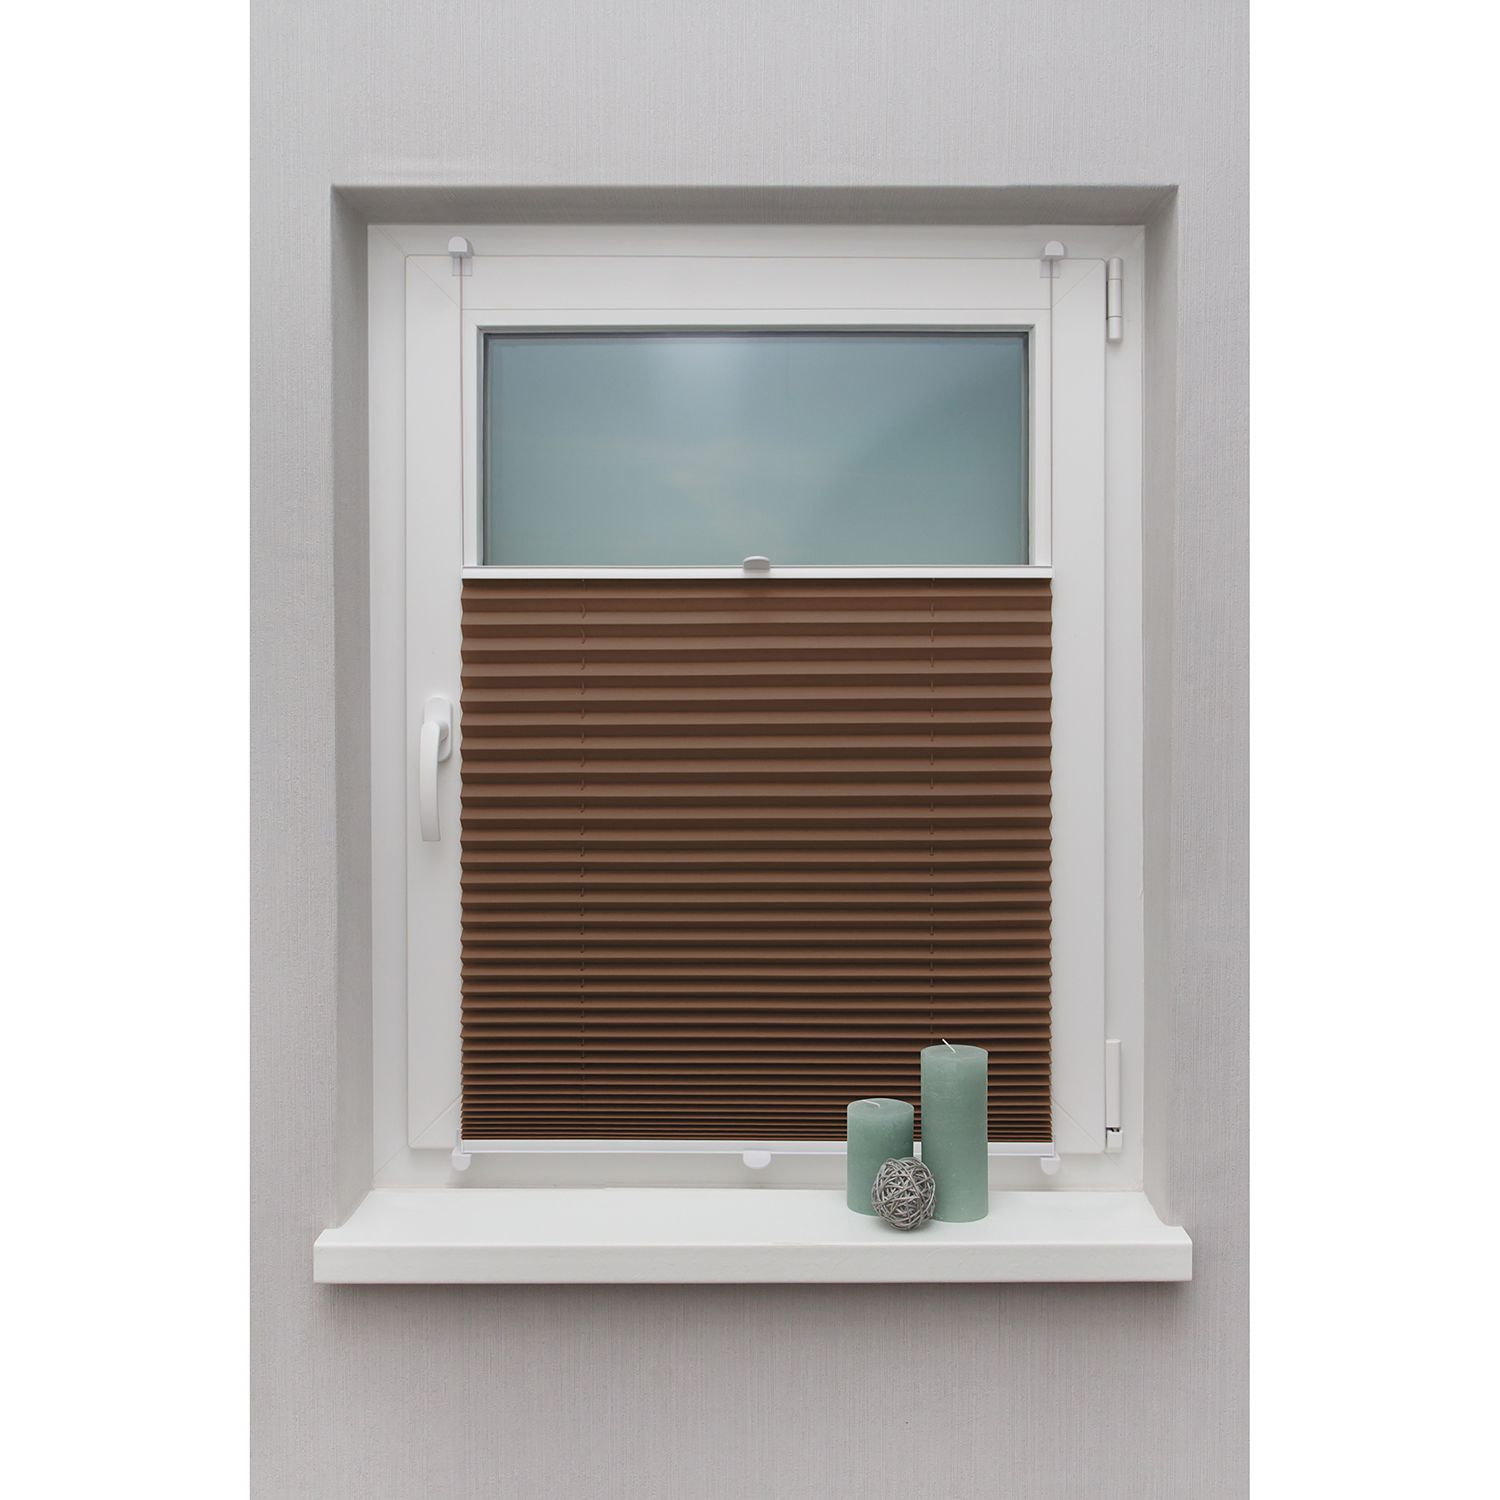 Pleated Blinds Buy Pleated Blinds In Many Sizes And Colors Online